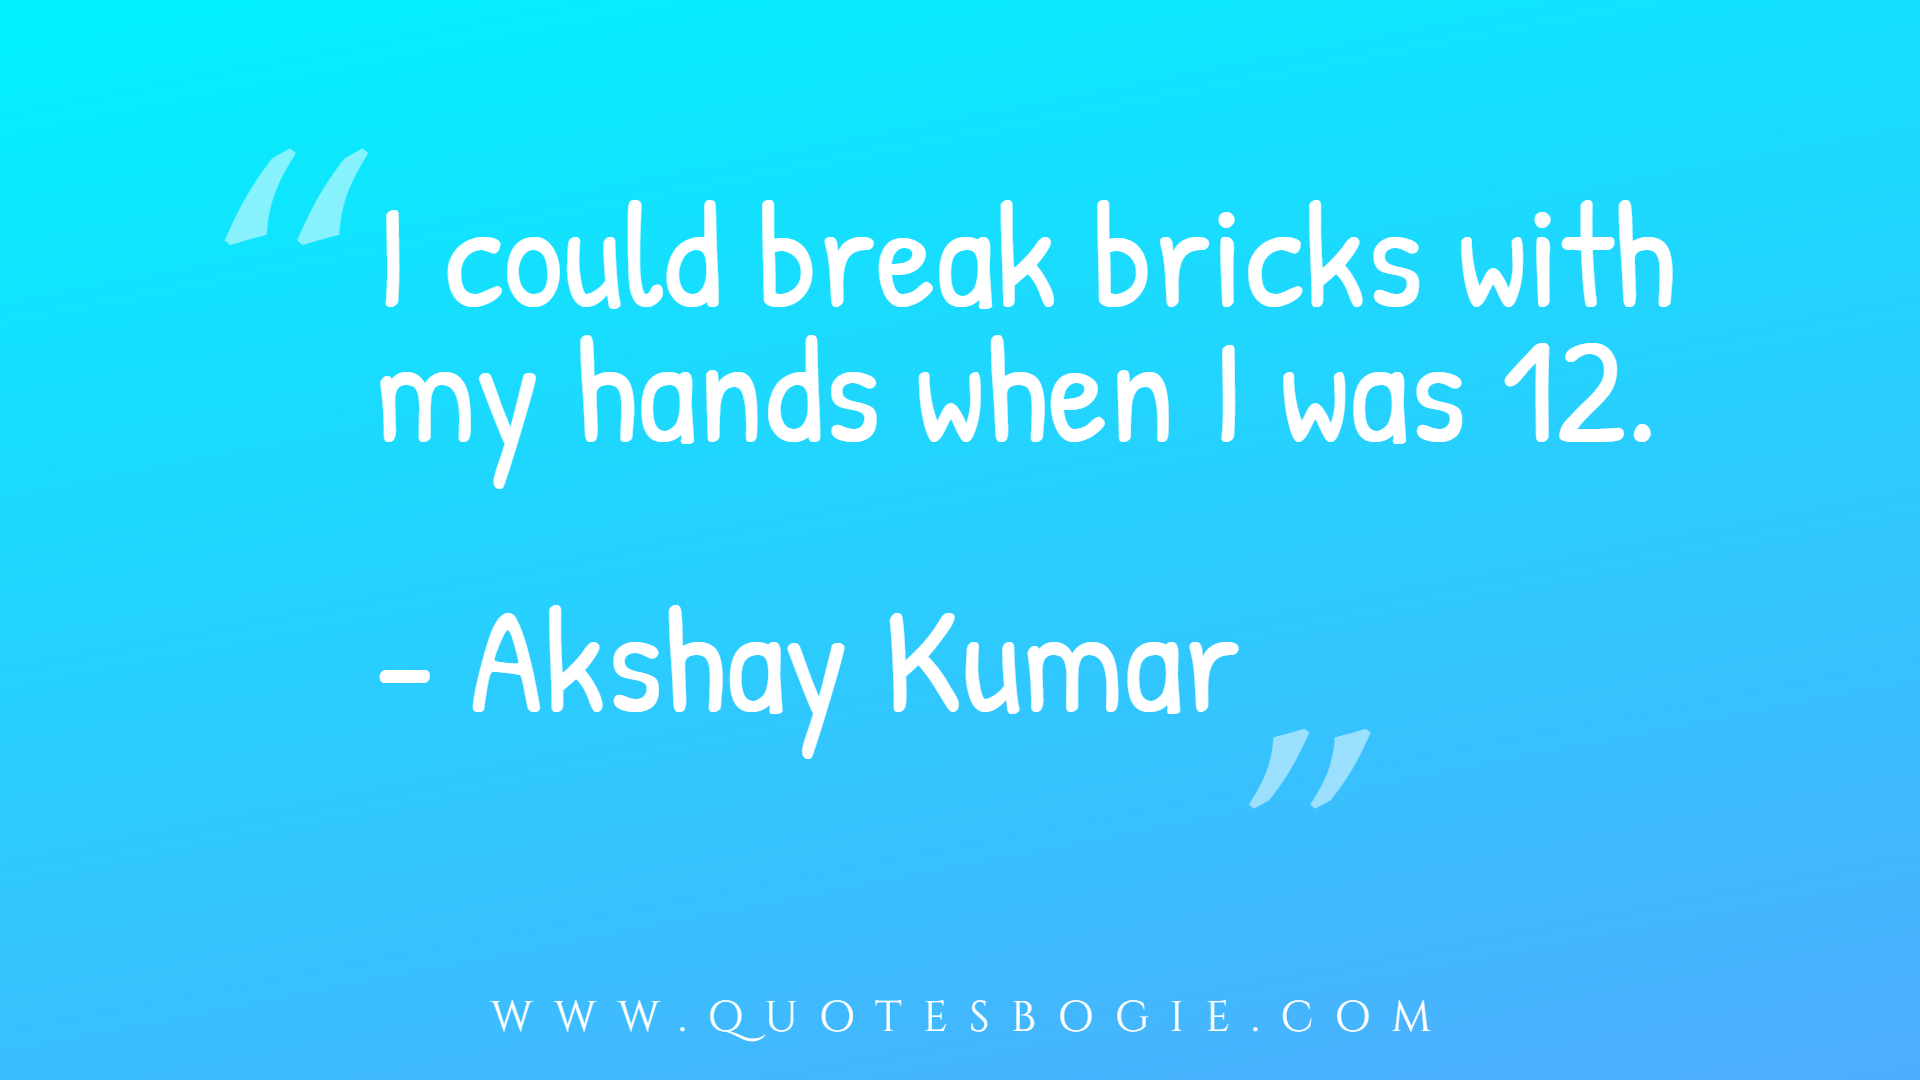 I could break bricks with my hands when I was 12 - QuotesBogie